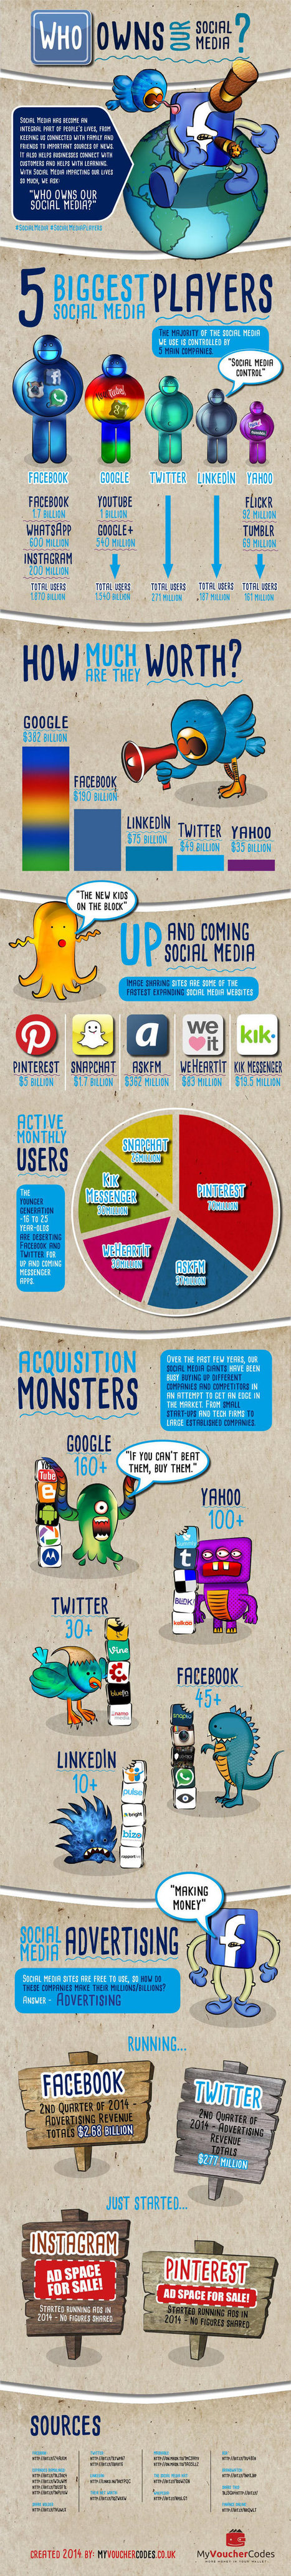 Who Owns your Social Media, an Infographic | SEO, SMM | Scoop.it